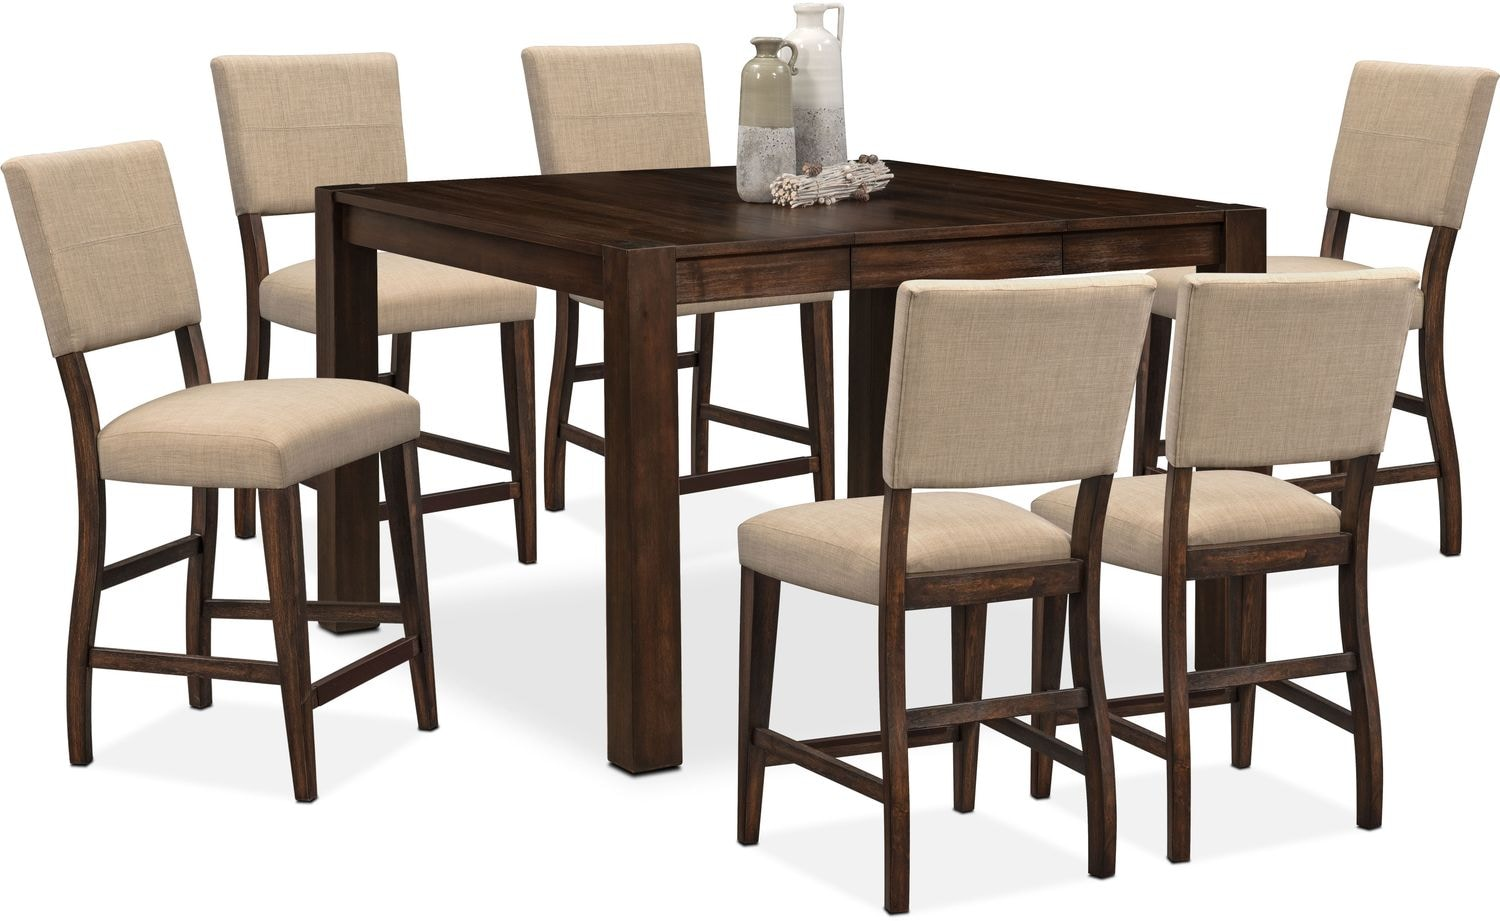 Tribeca Counter-Height Table and 6 Upholstered Side Chairs - Tobacco